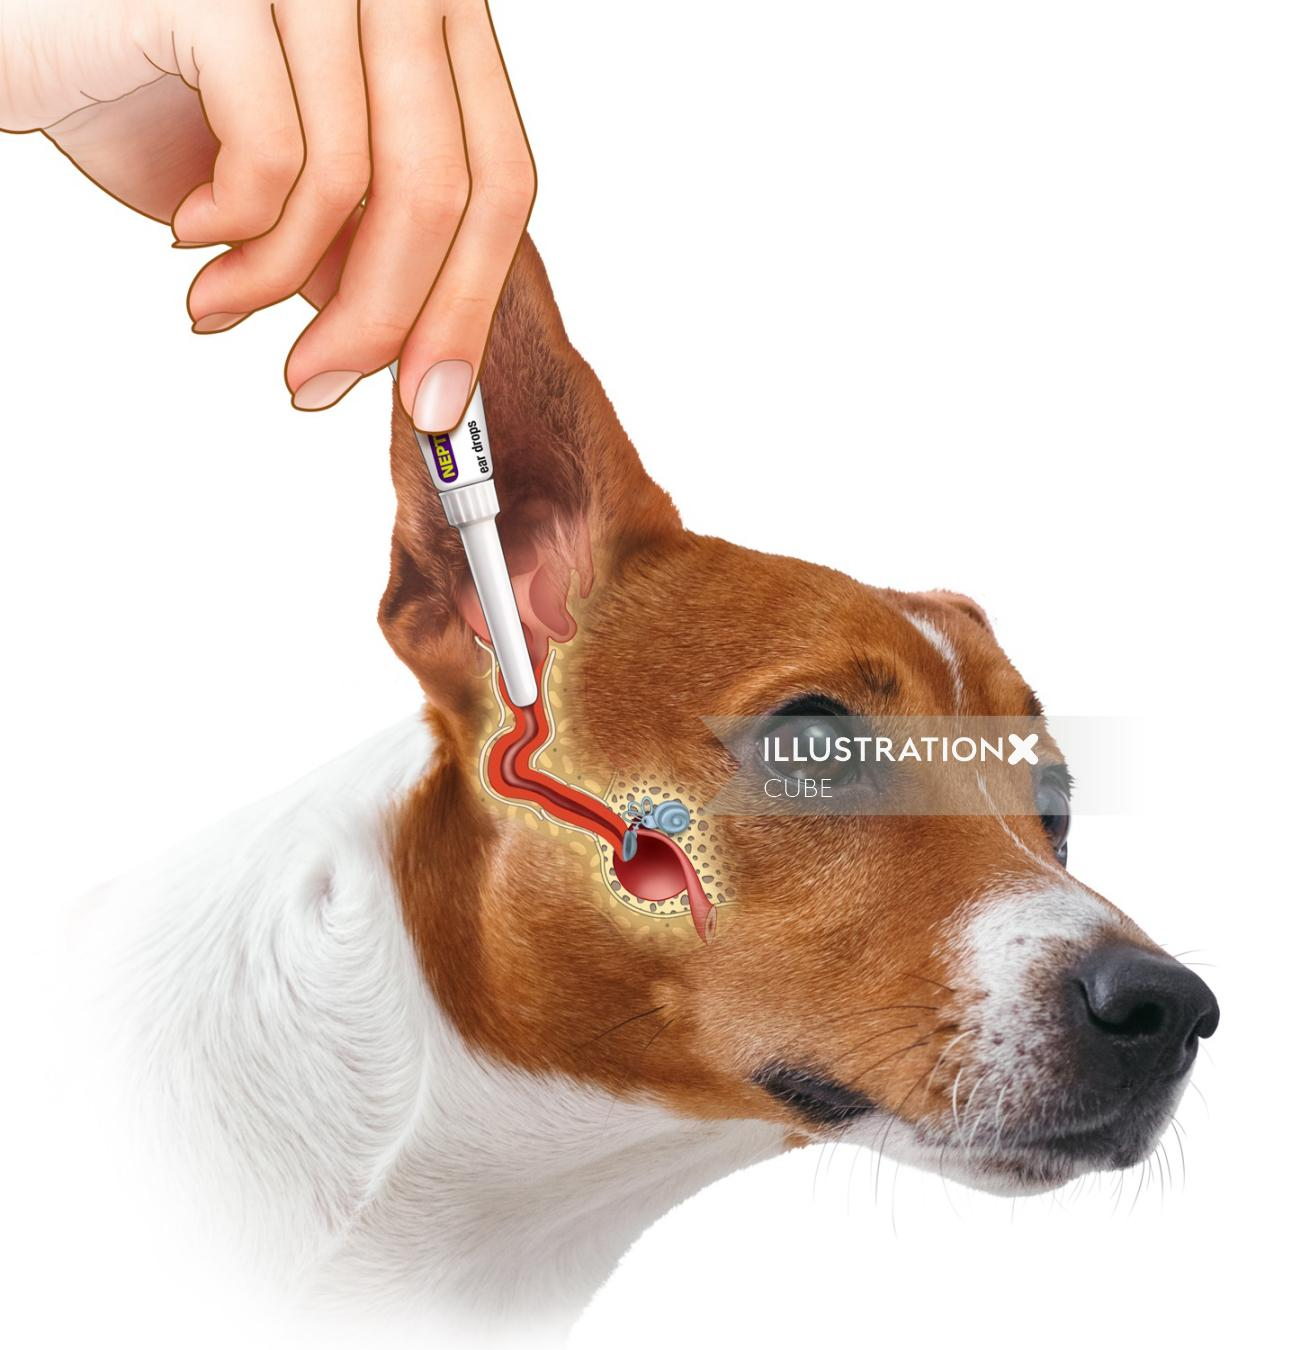 Dog went for medical treatment graphical illustration